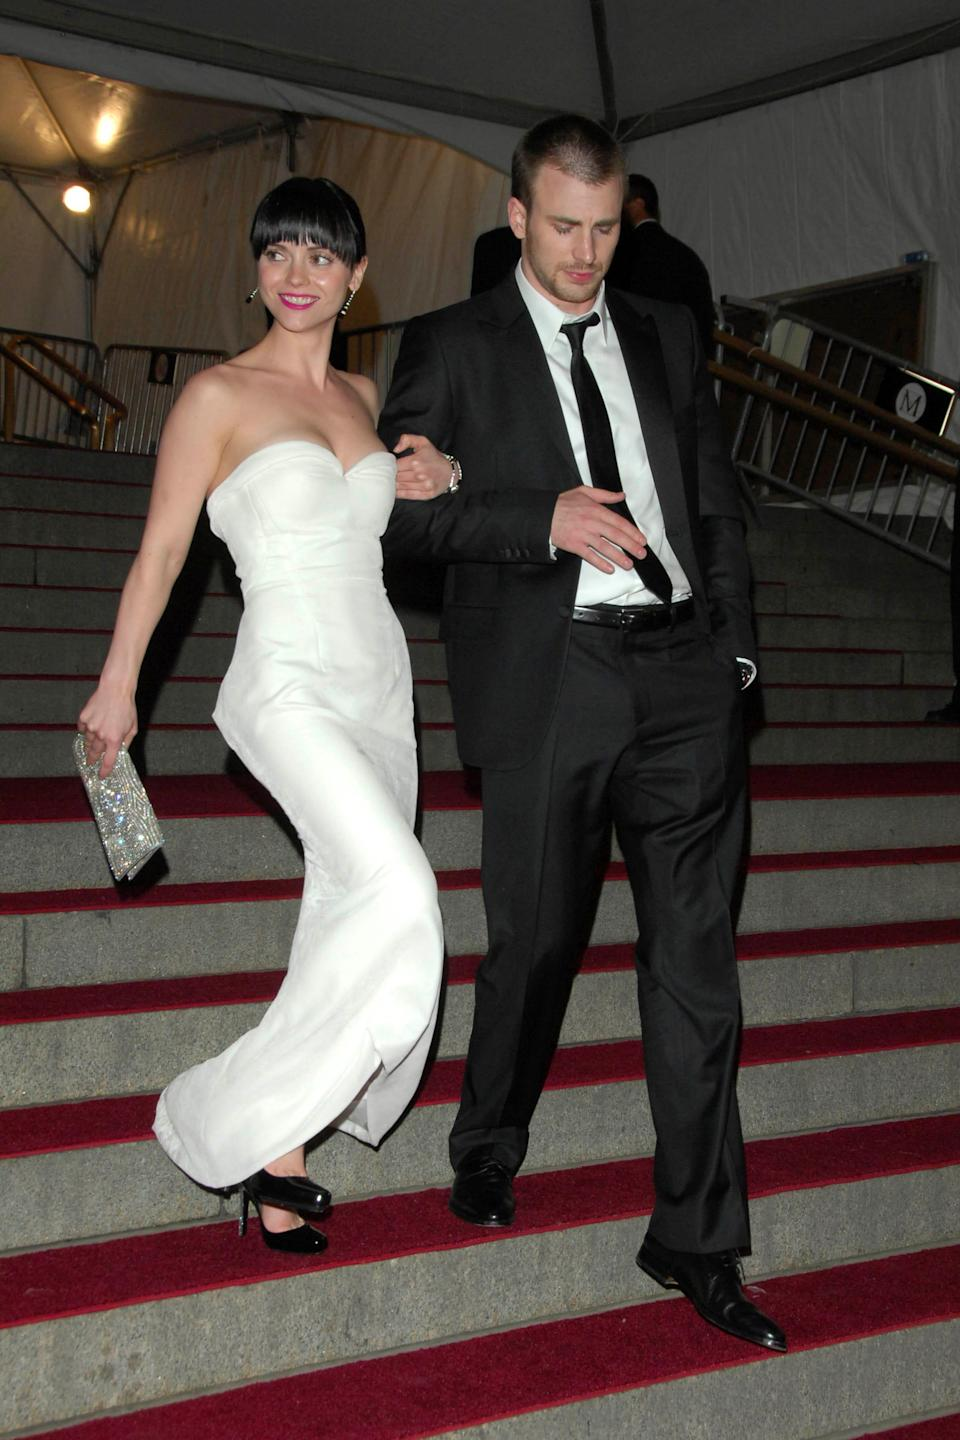 Christina Ricci wears a white dress and walks down a flight of stairs with Chris Evans, who wears a black suit.